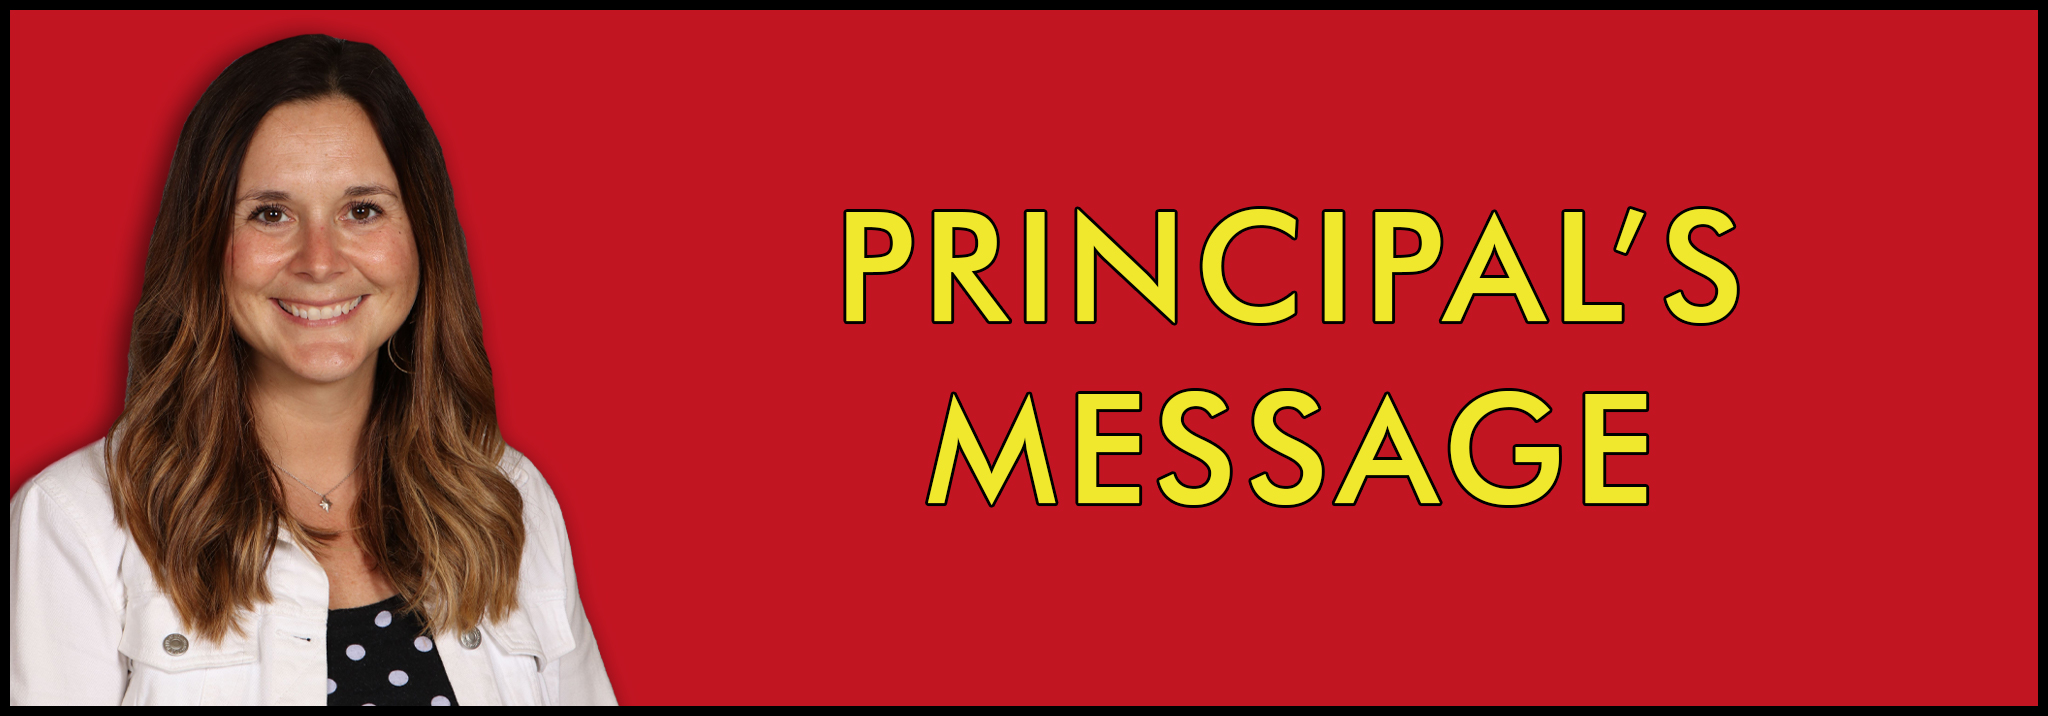 principal message image